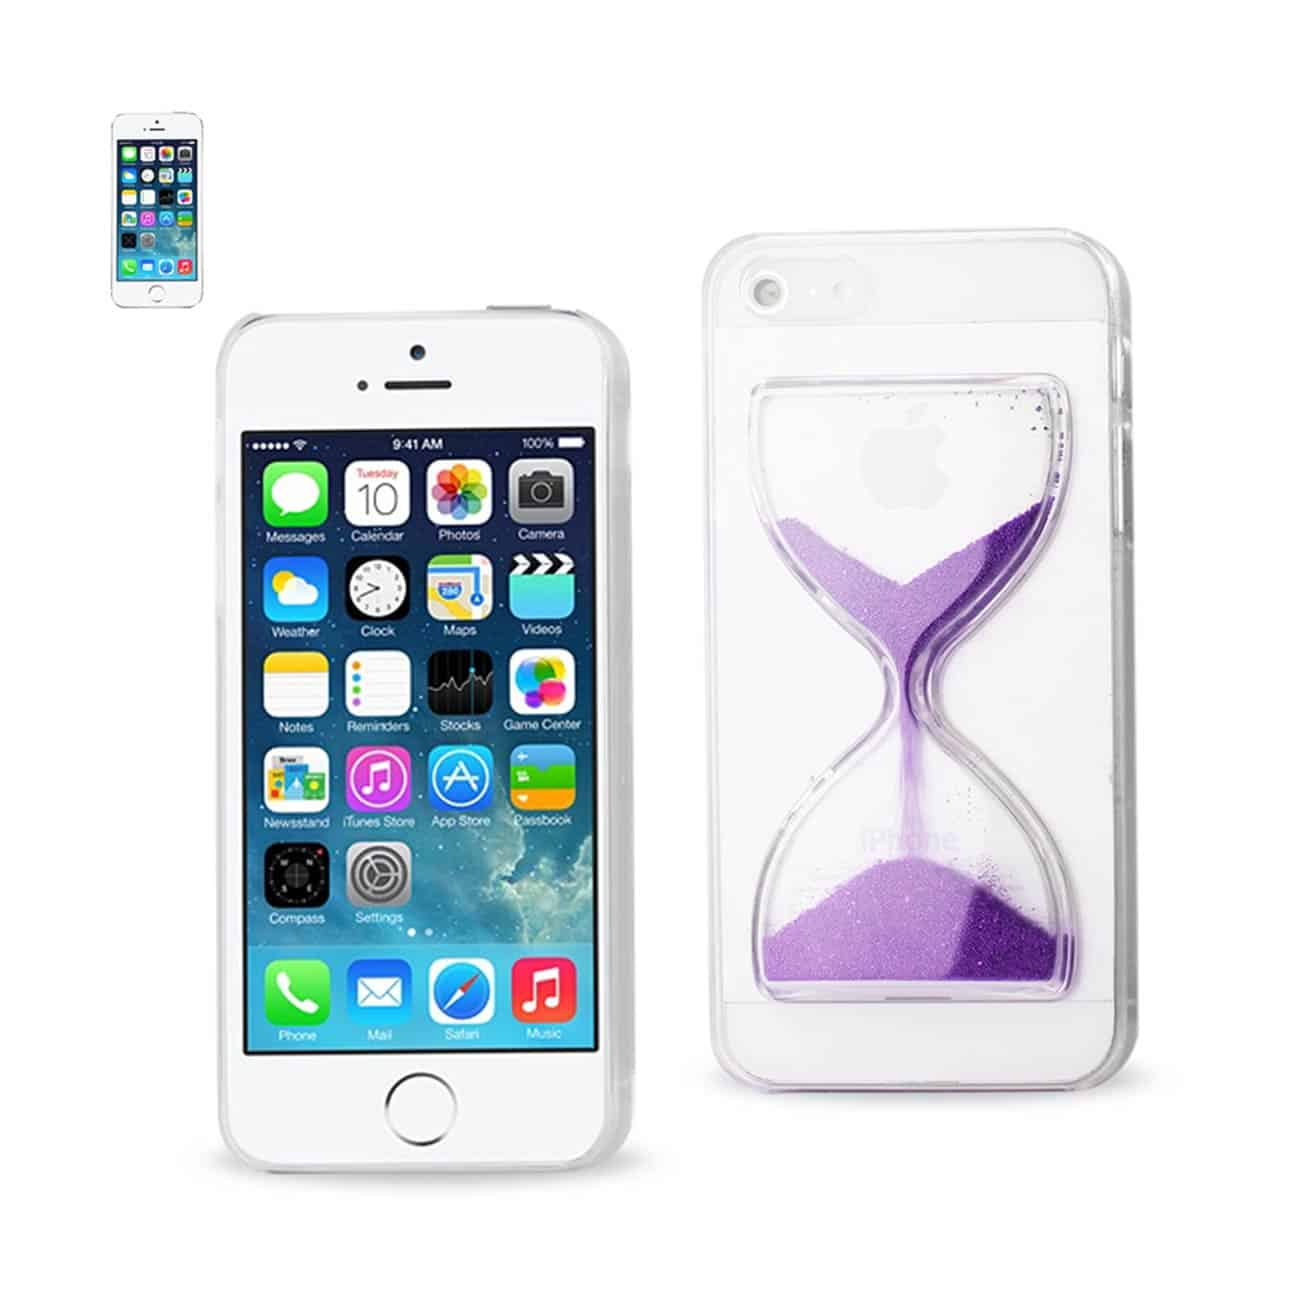 IPHONE SE/ 5S/ 5 3D SAND CLOCK CLEAR CASE IN PURPLE